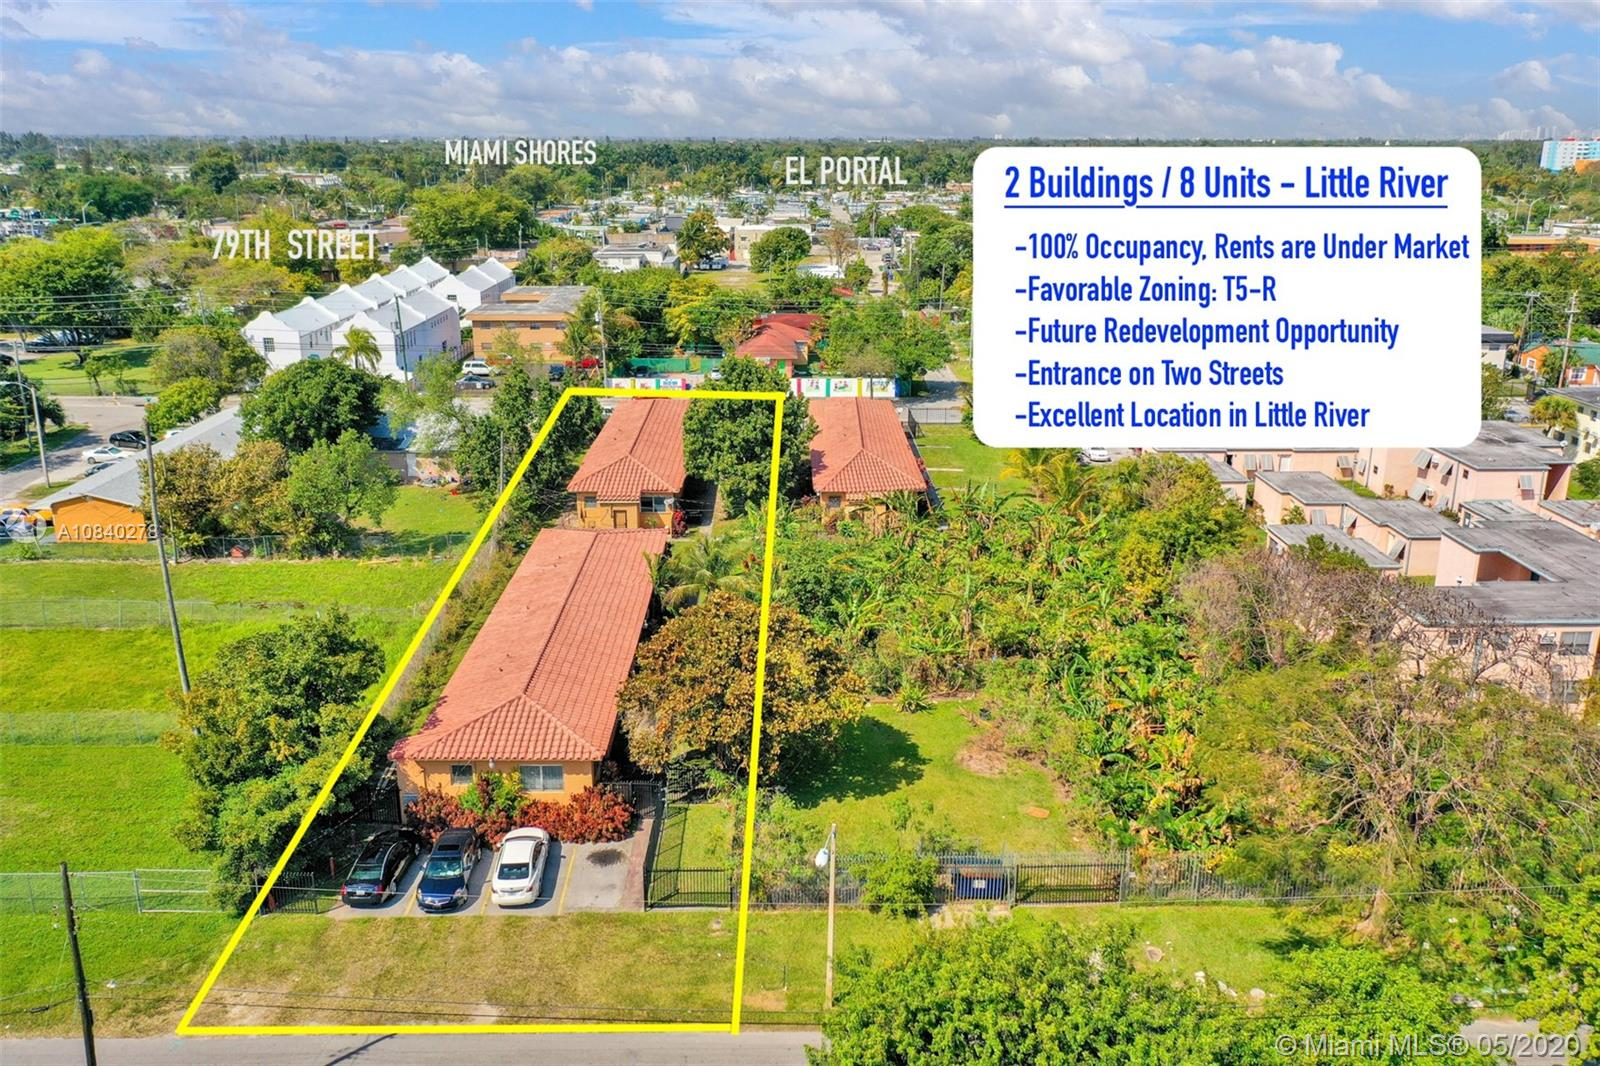 111 NW 76th St, Miami Shores, Florida